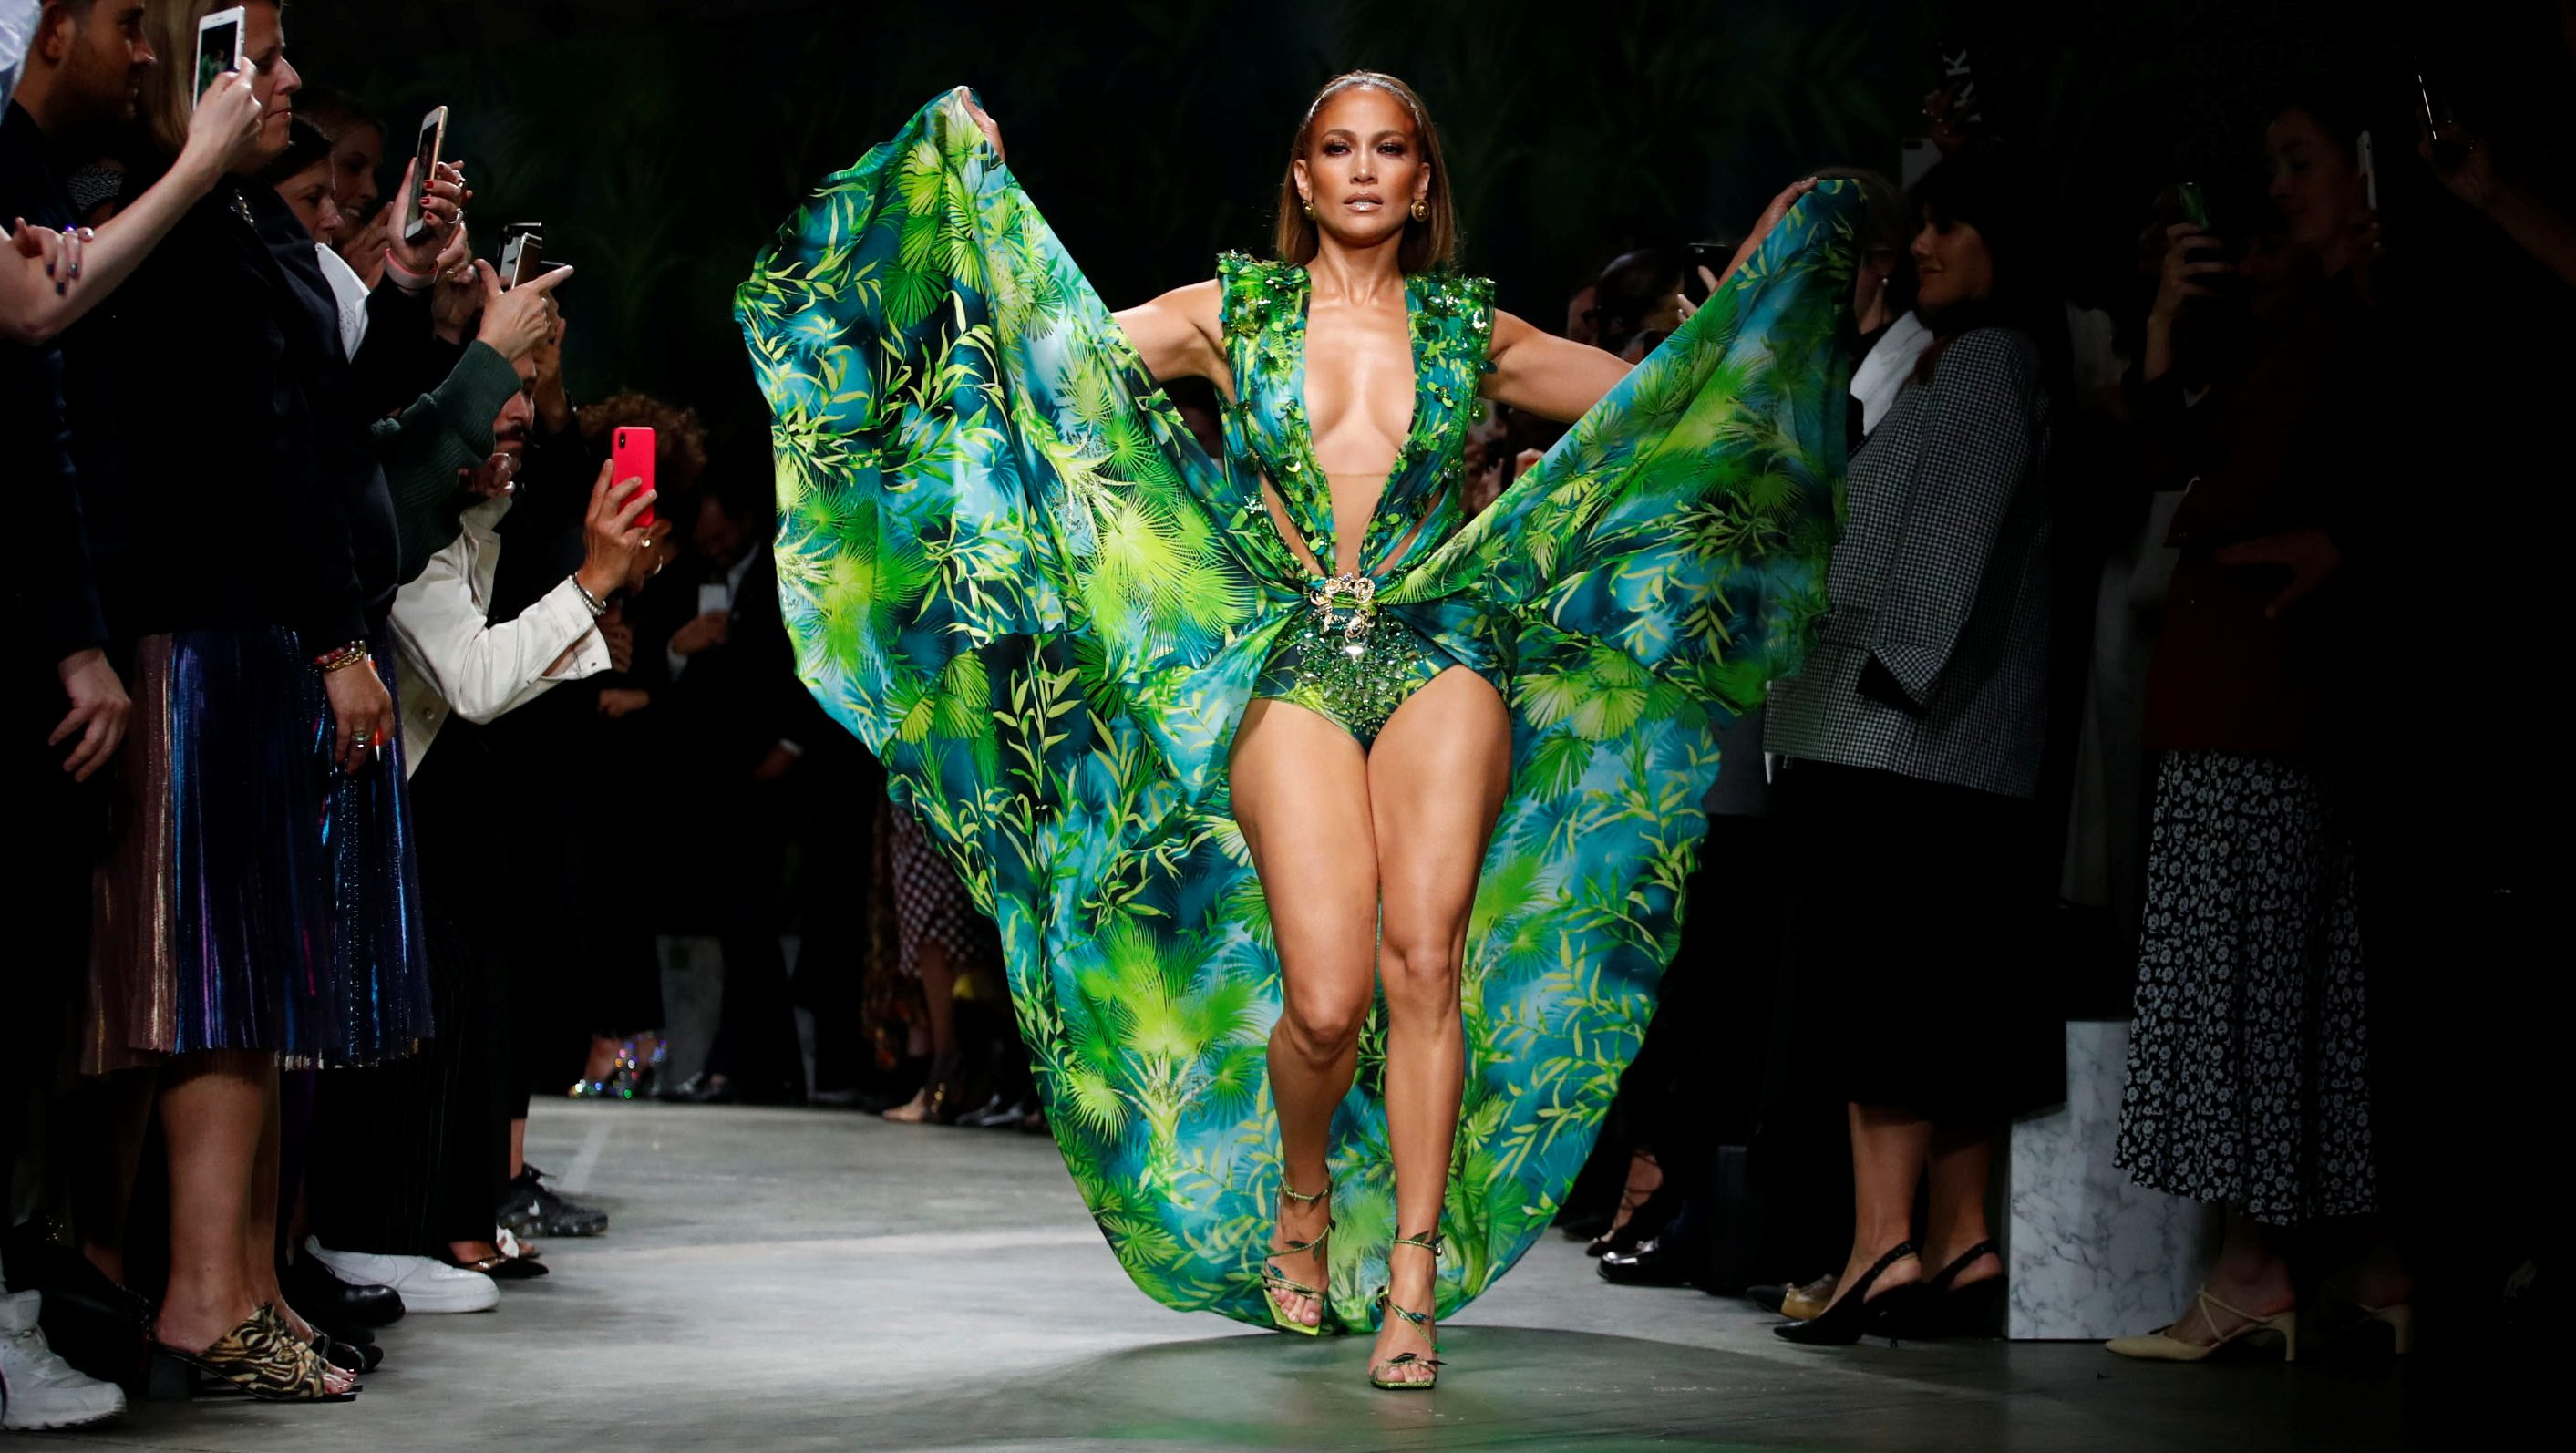 Jennifer Lopez in the famous green Versace dress that broke the internet.